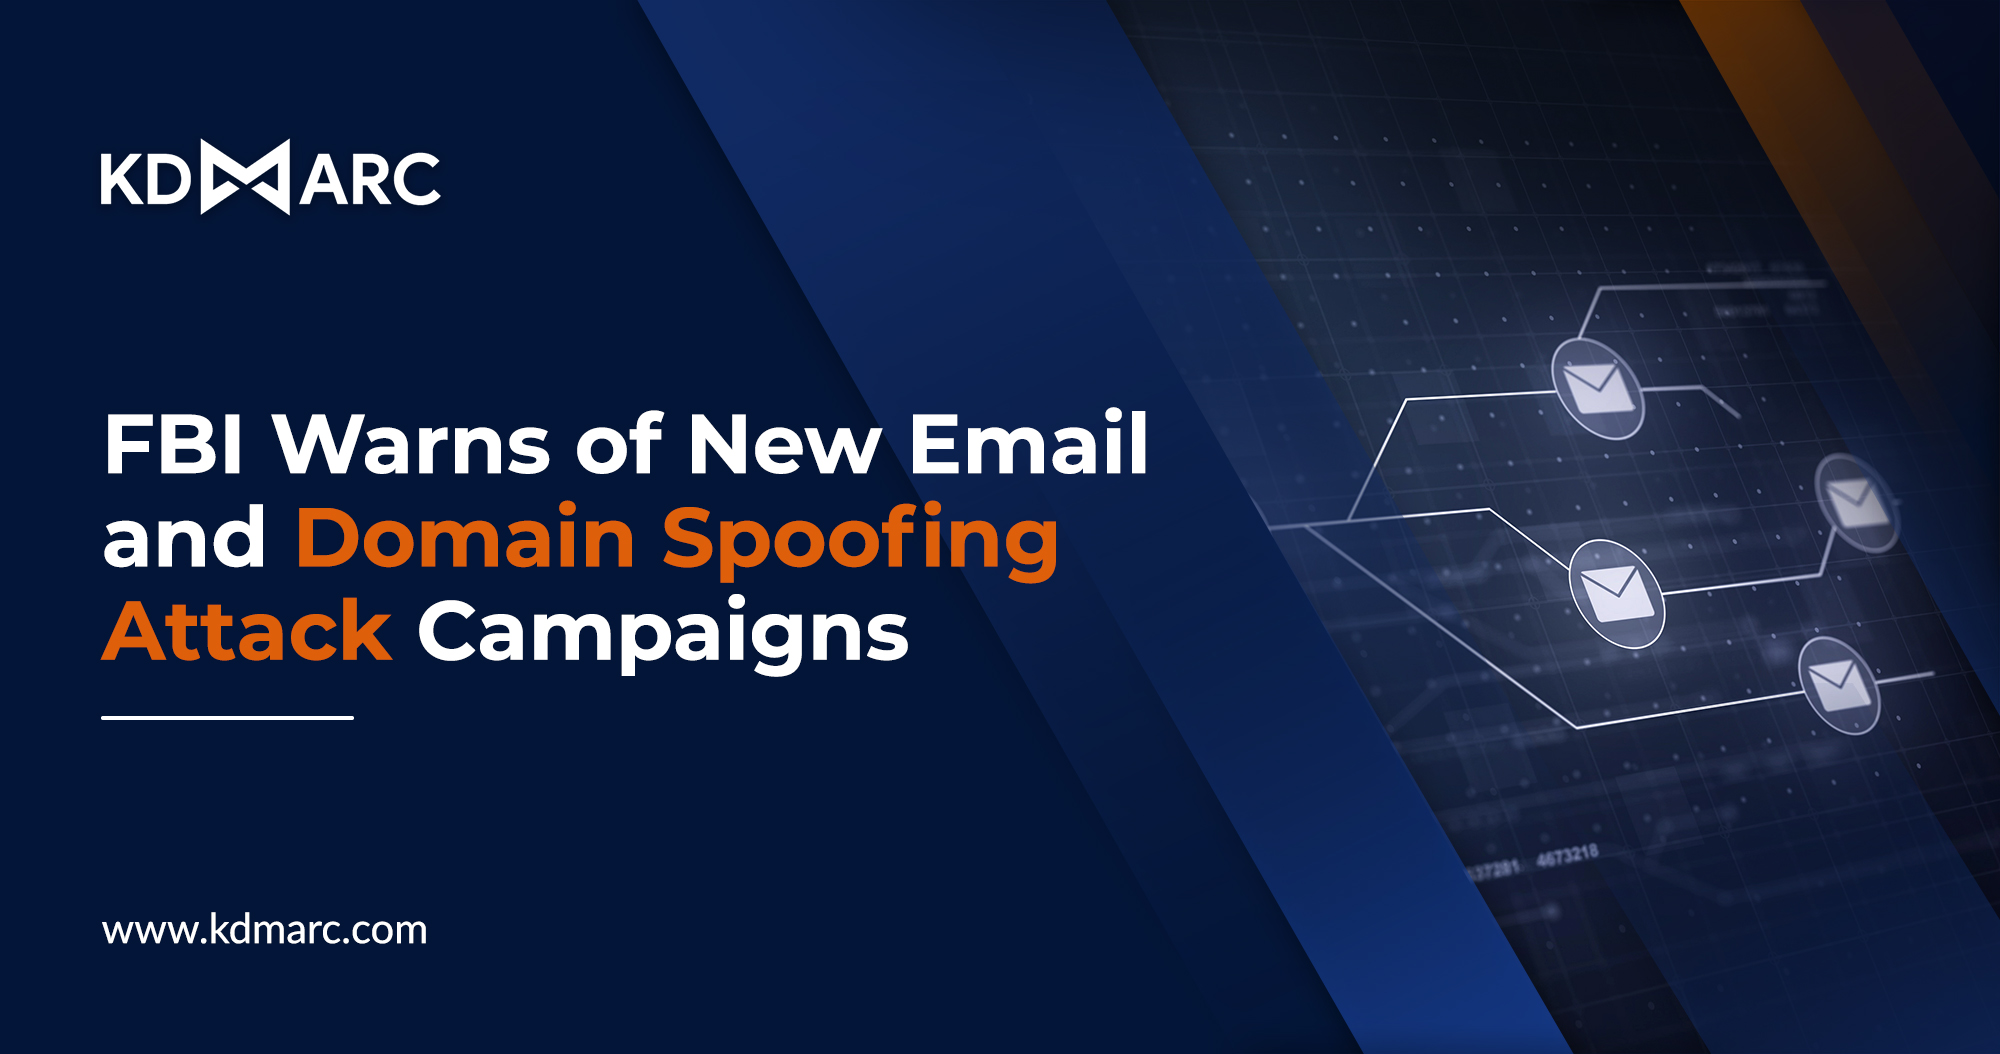 FBI Warns of New Email and Domain Spoofing Attack Campaigns